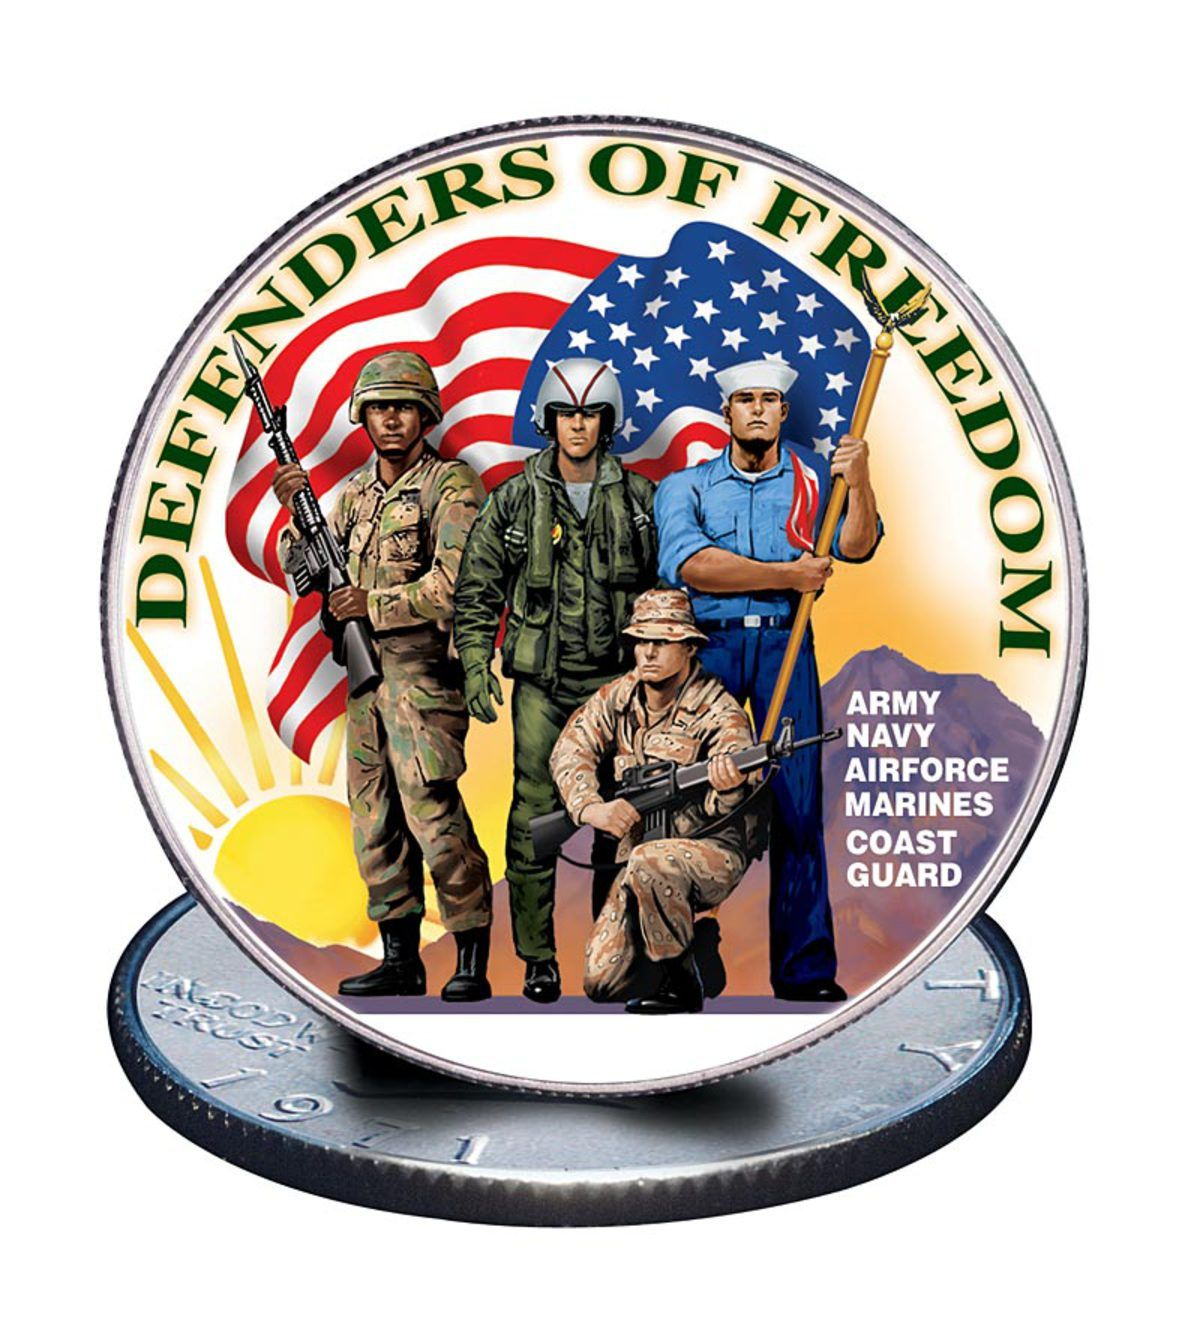 Inspired by the valor of our defenders of freedom, this